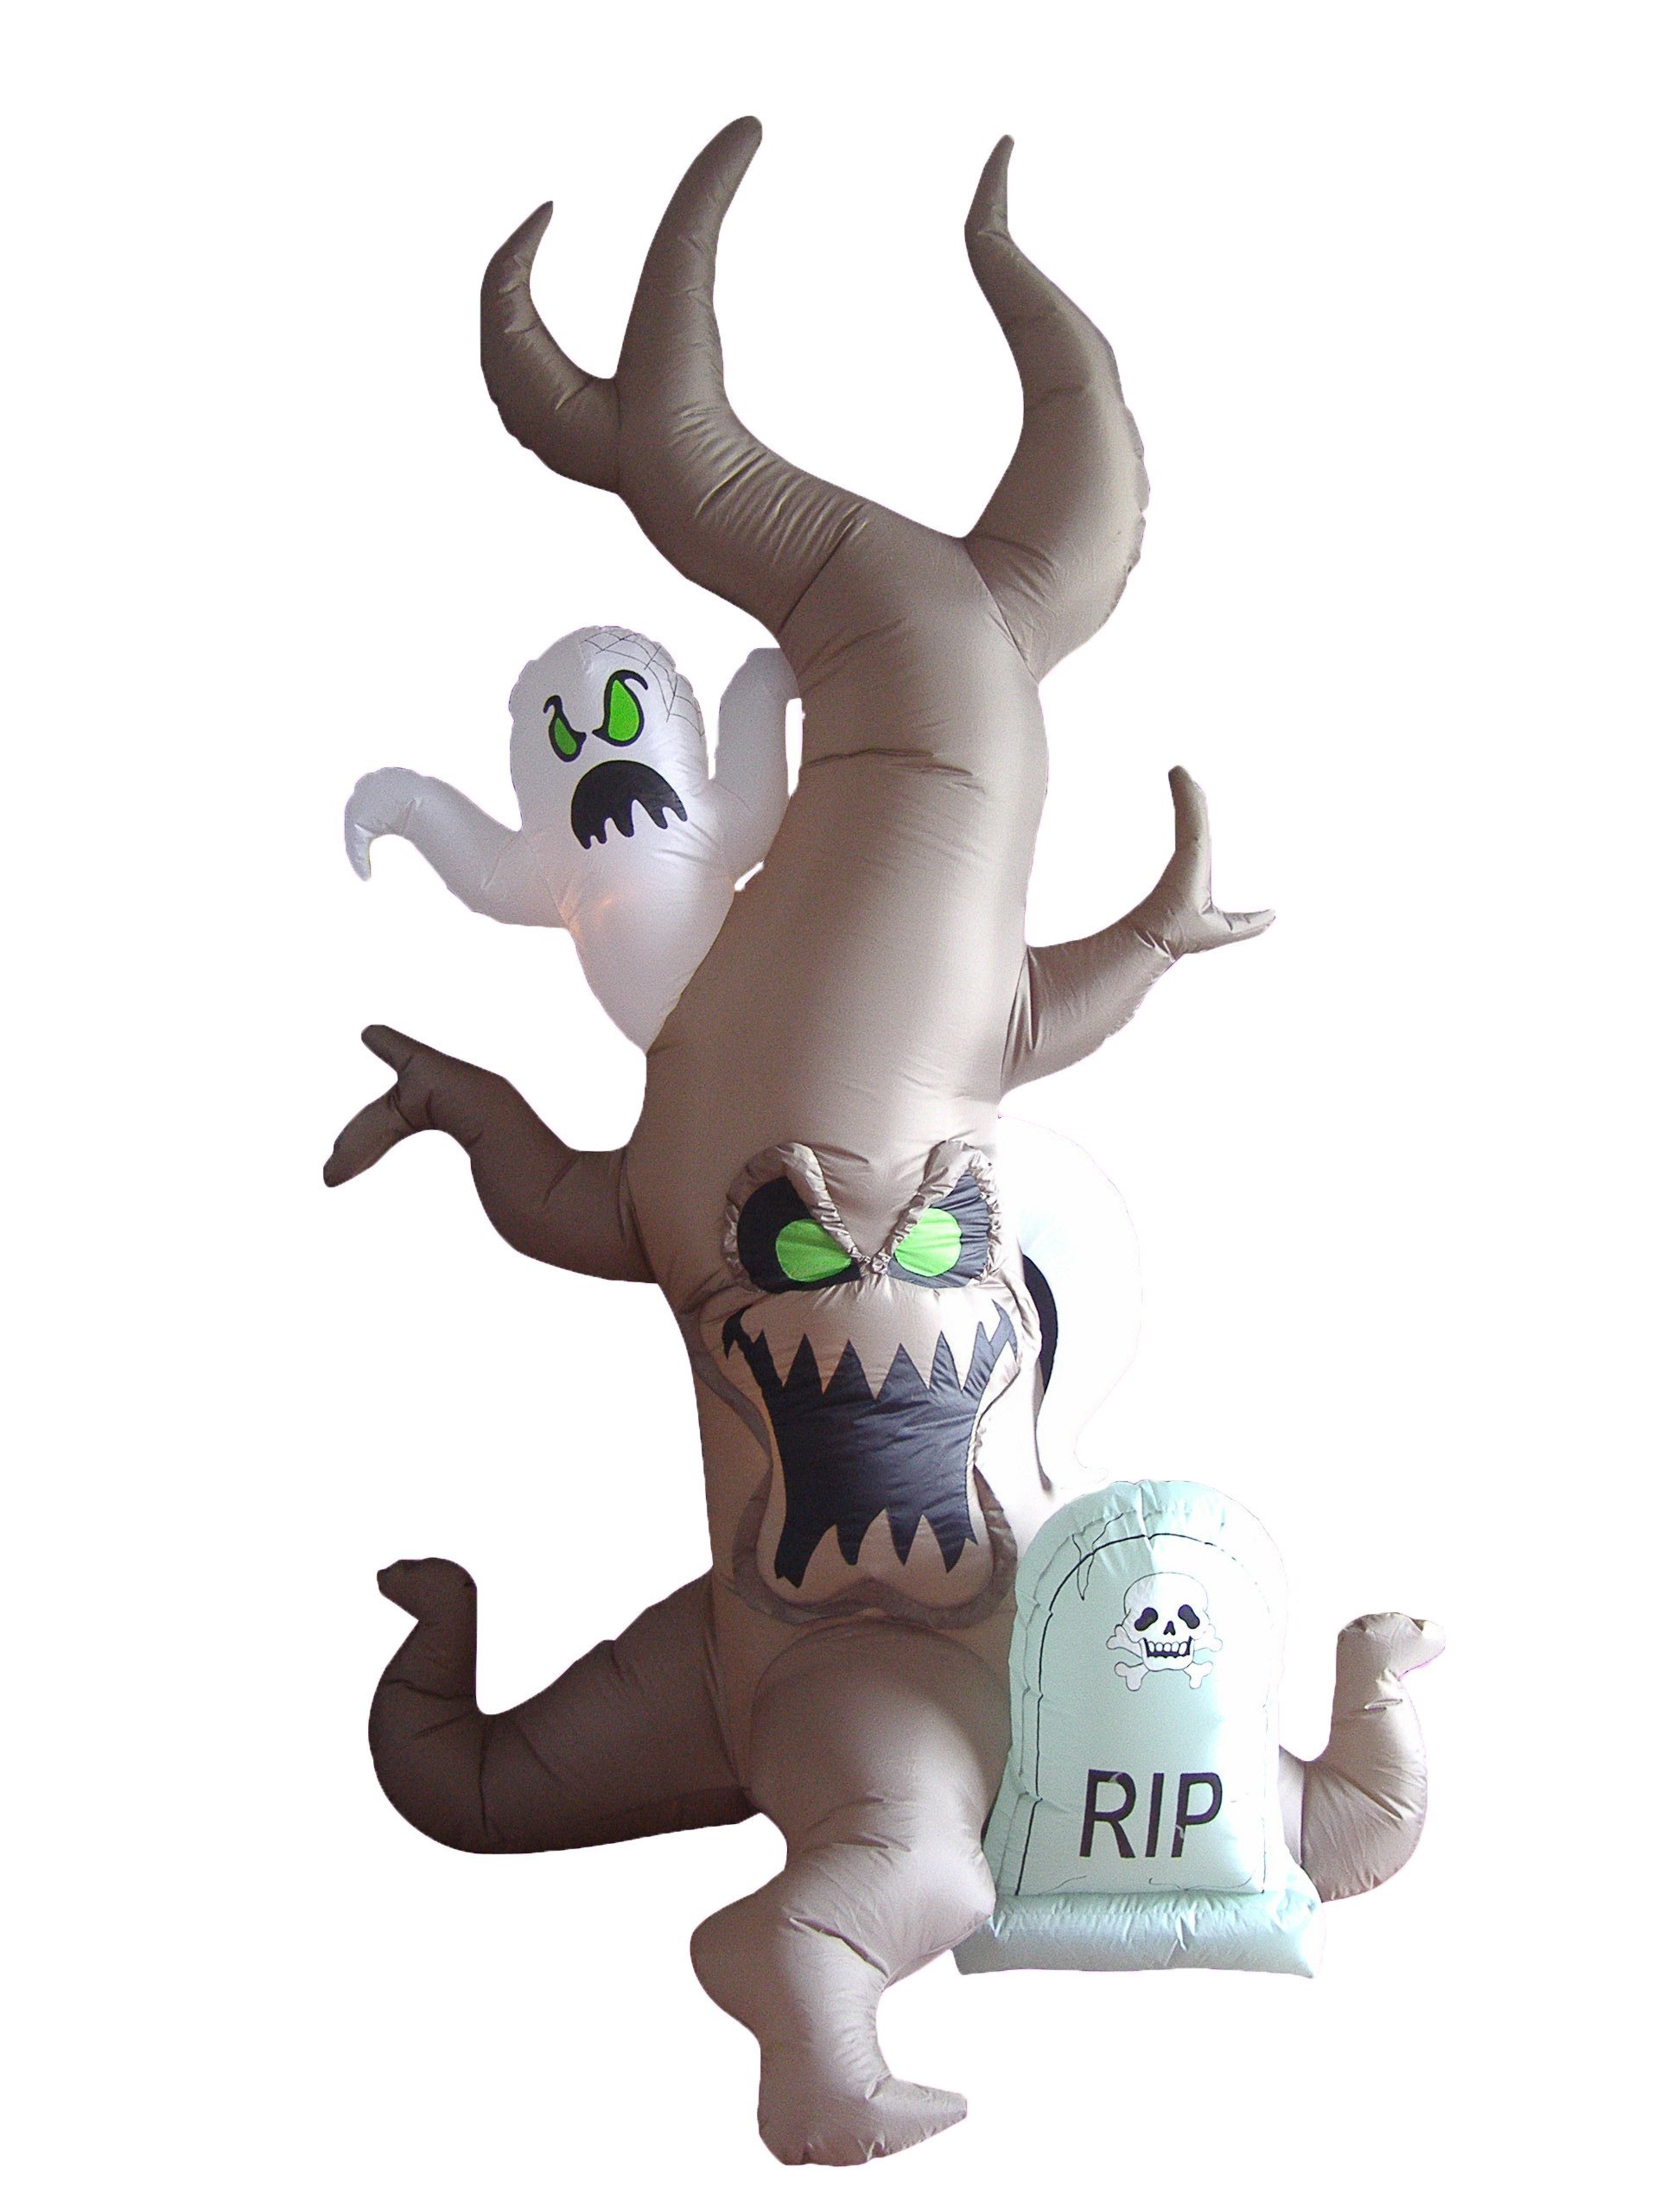 8 Foot Tall Halloween Inflatable Grave Scene with Ghost, Dead Tree Monster and Tombstone Party LED Lights Decor Outdoor Indoor Holiday Decorations, Blow up Lighted Yard Lawn Decor Home Family Outside by BZB Goods